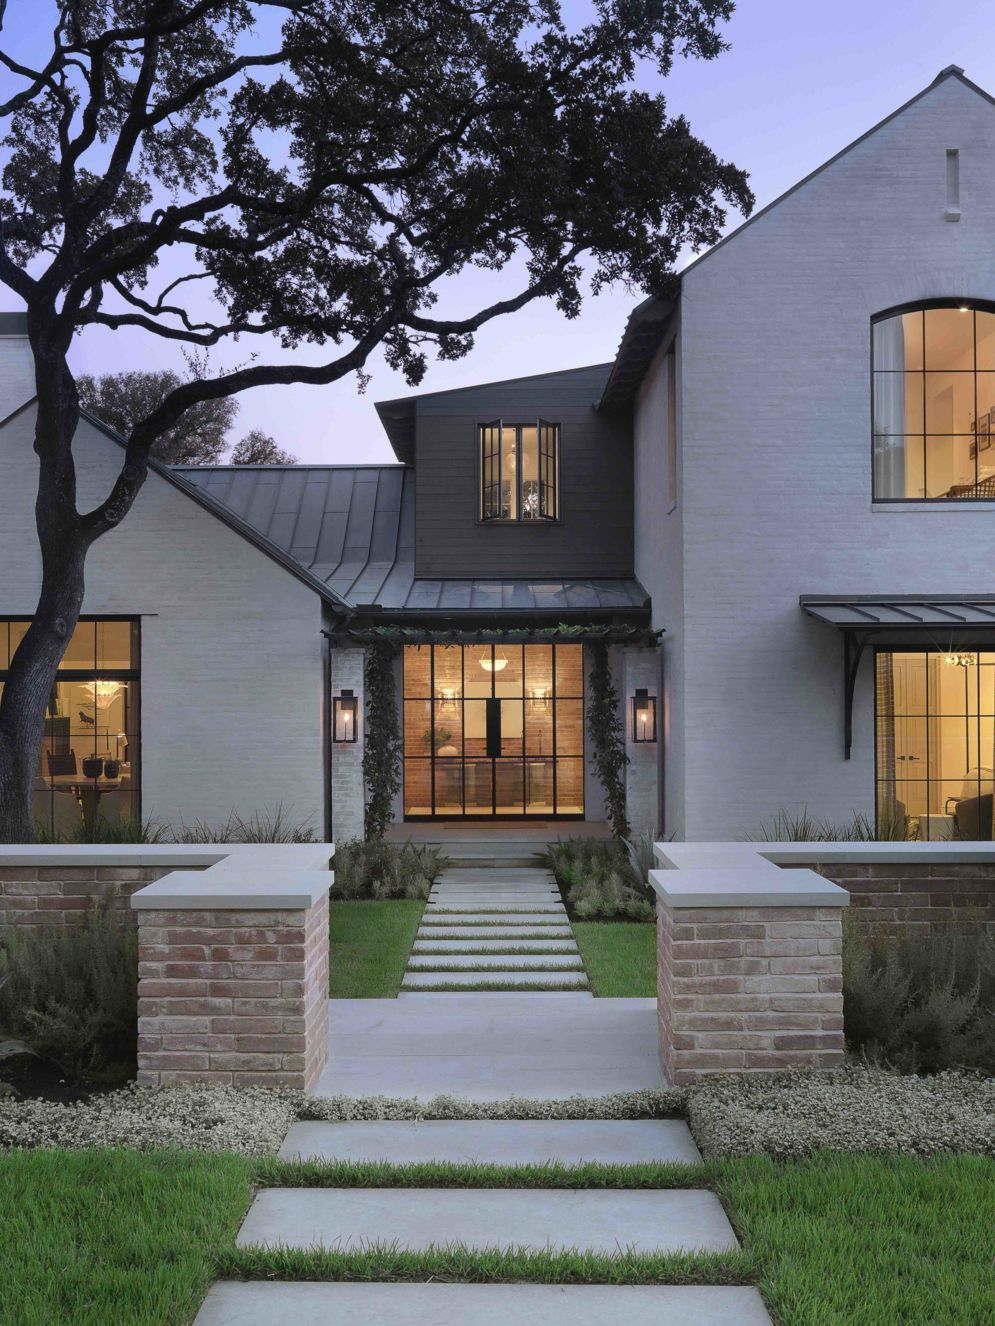 Modern house with new farmhouse exterior design pulling out country charm and warm welcoming display Image 40